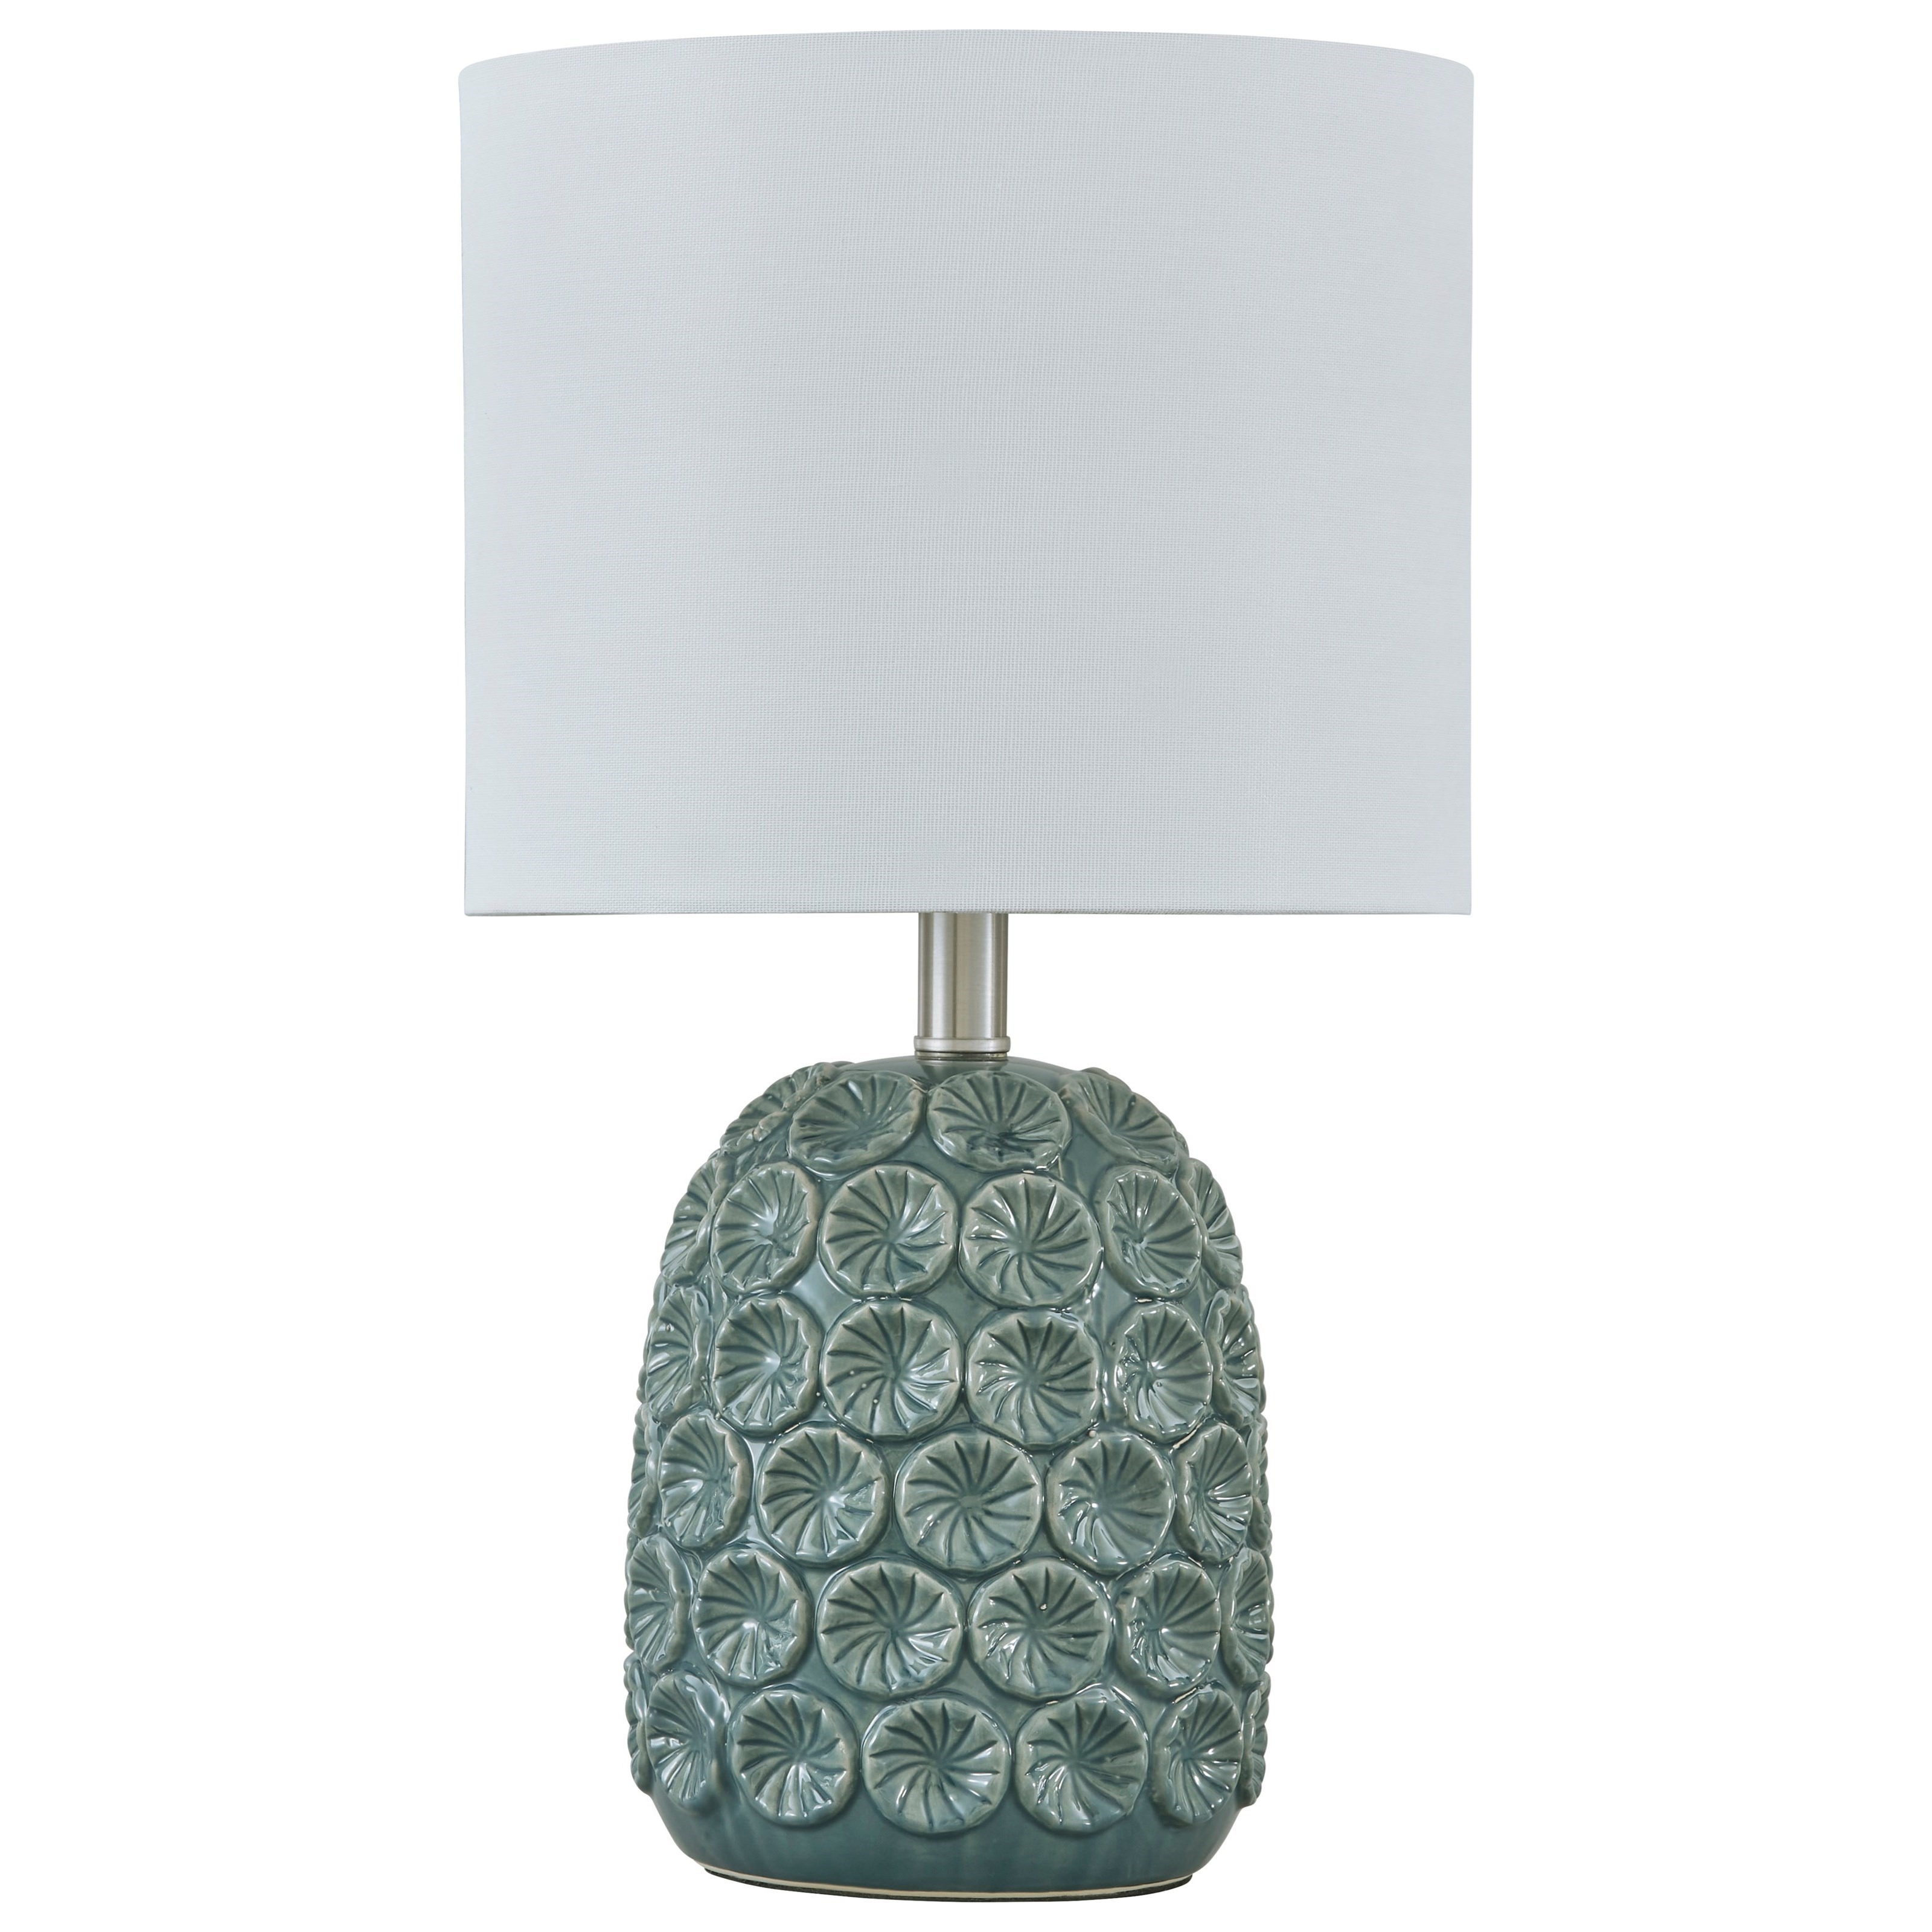 Lamps - Casual Moorbank Teal Ceramic Table Lamp by Signature Design by Ashley at Furniture Barn